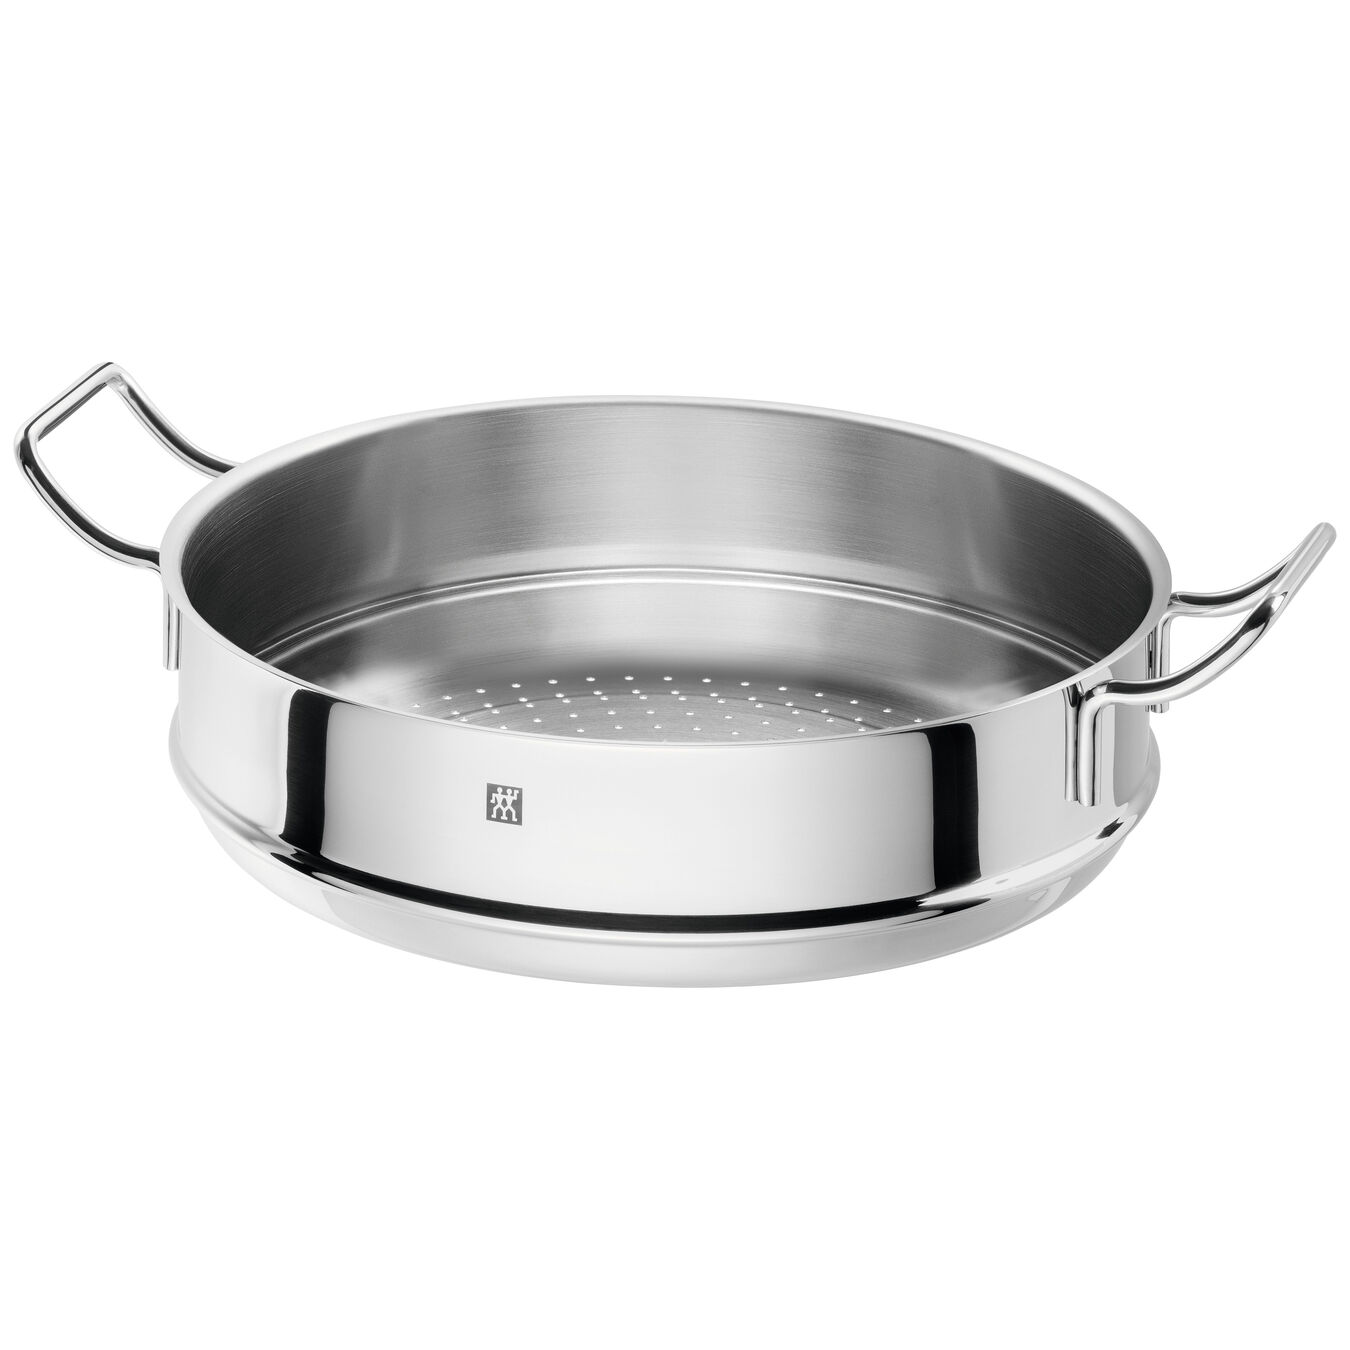 32 cm / 12.5 inch 18/10 Stainless Steel Wok With Steamer,,large 3